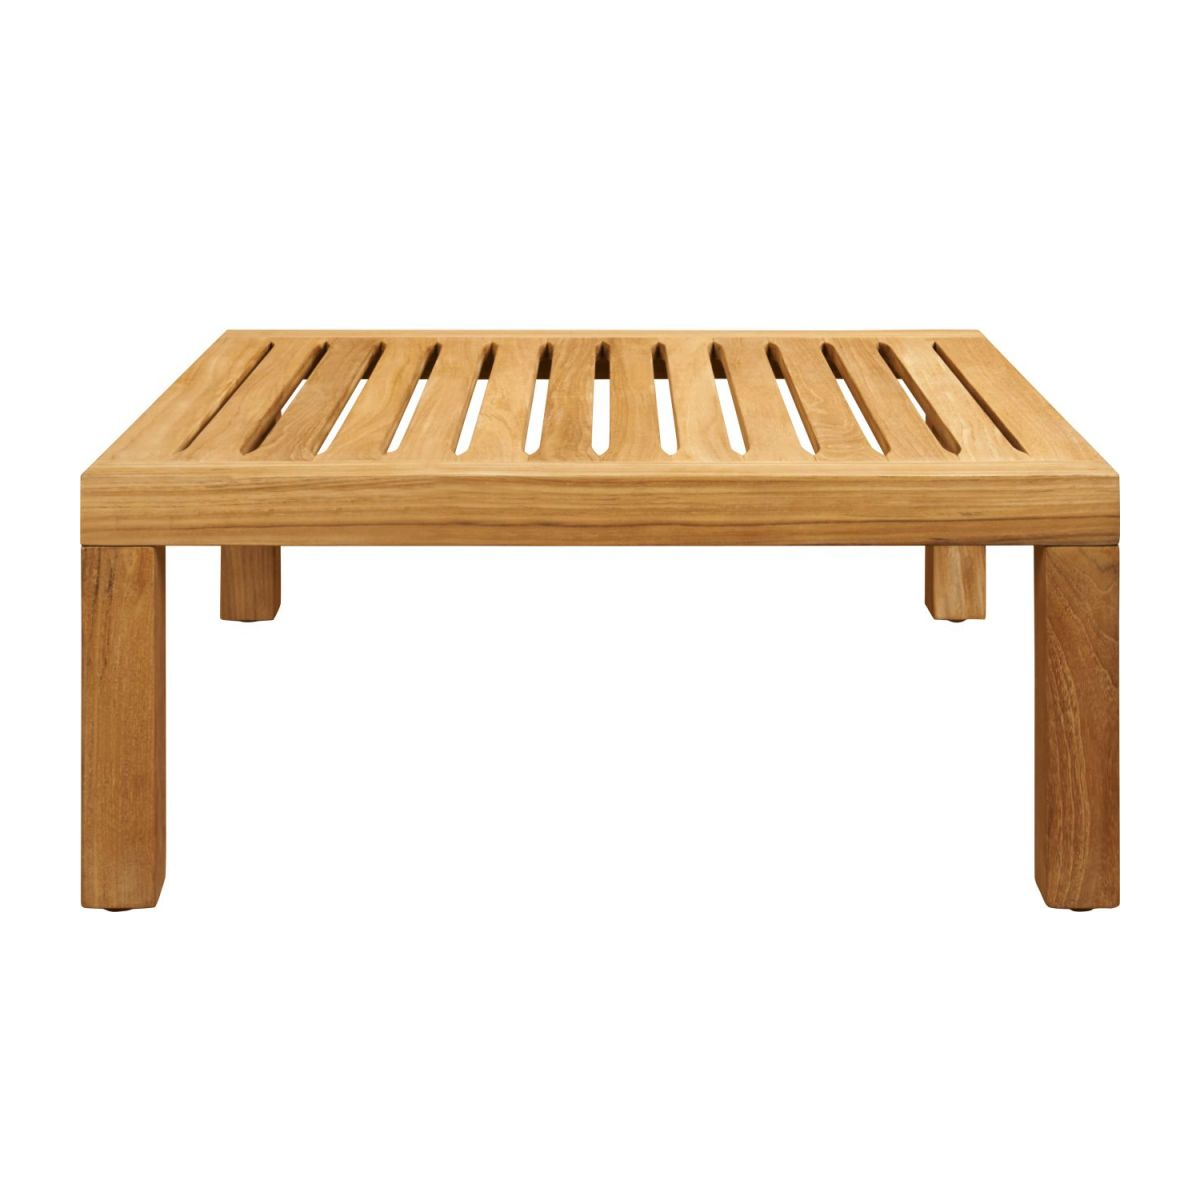 Table basse de jardin en teck -Naturel - 70 x 70 cm n°3